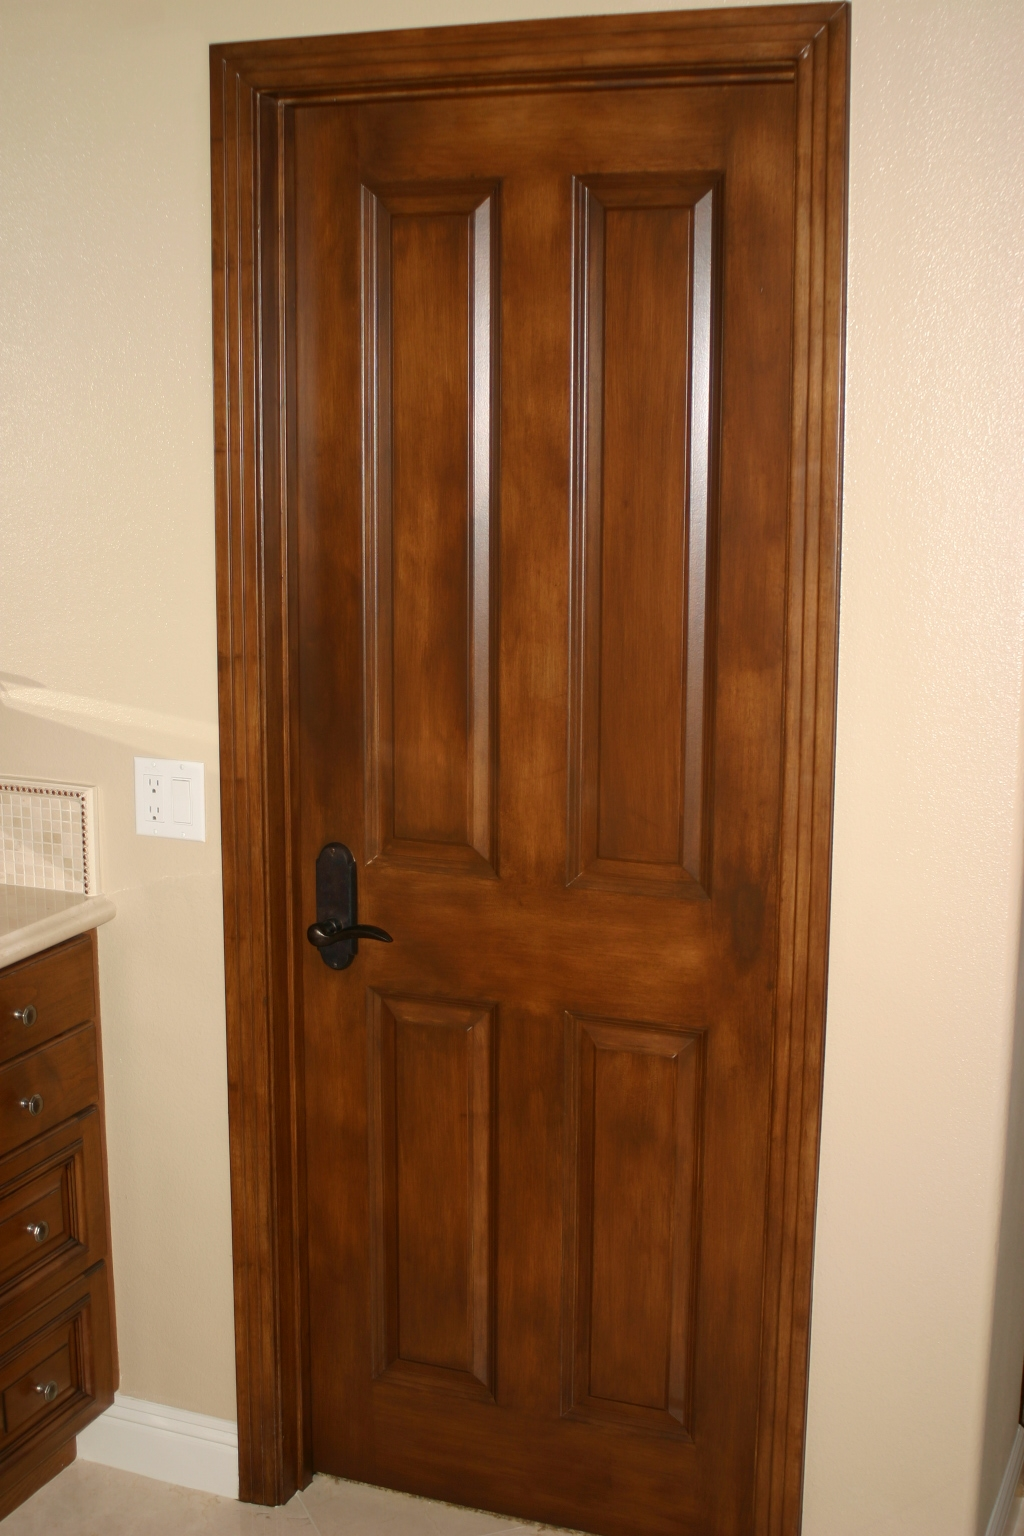 1536 #492208 Interior Door Before Same Door Fauxed To Beautiful Wood Tones pic Doors Entry 44411024